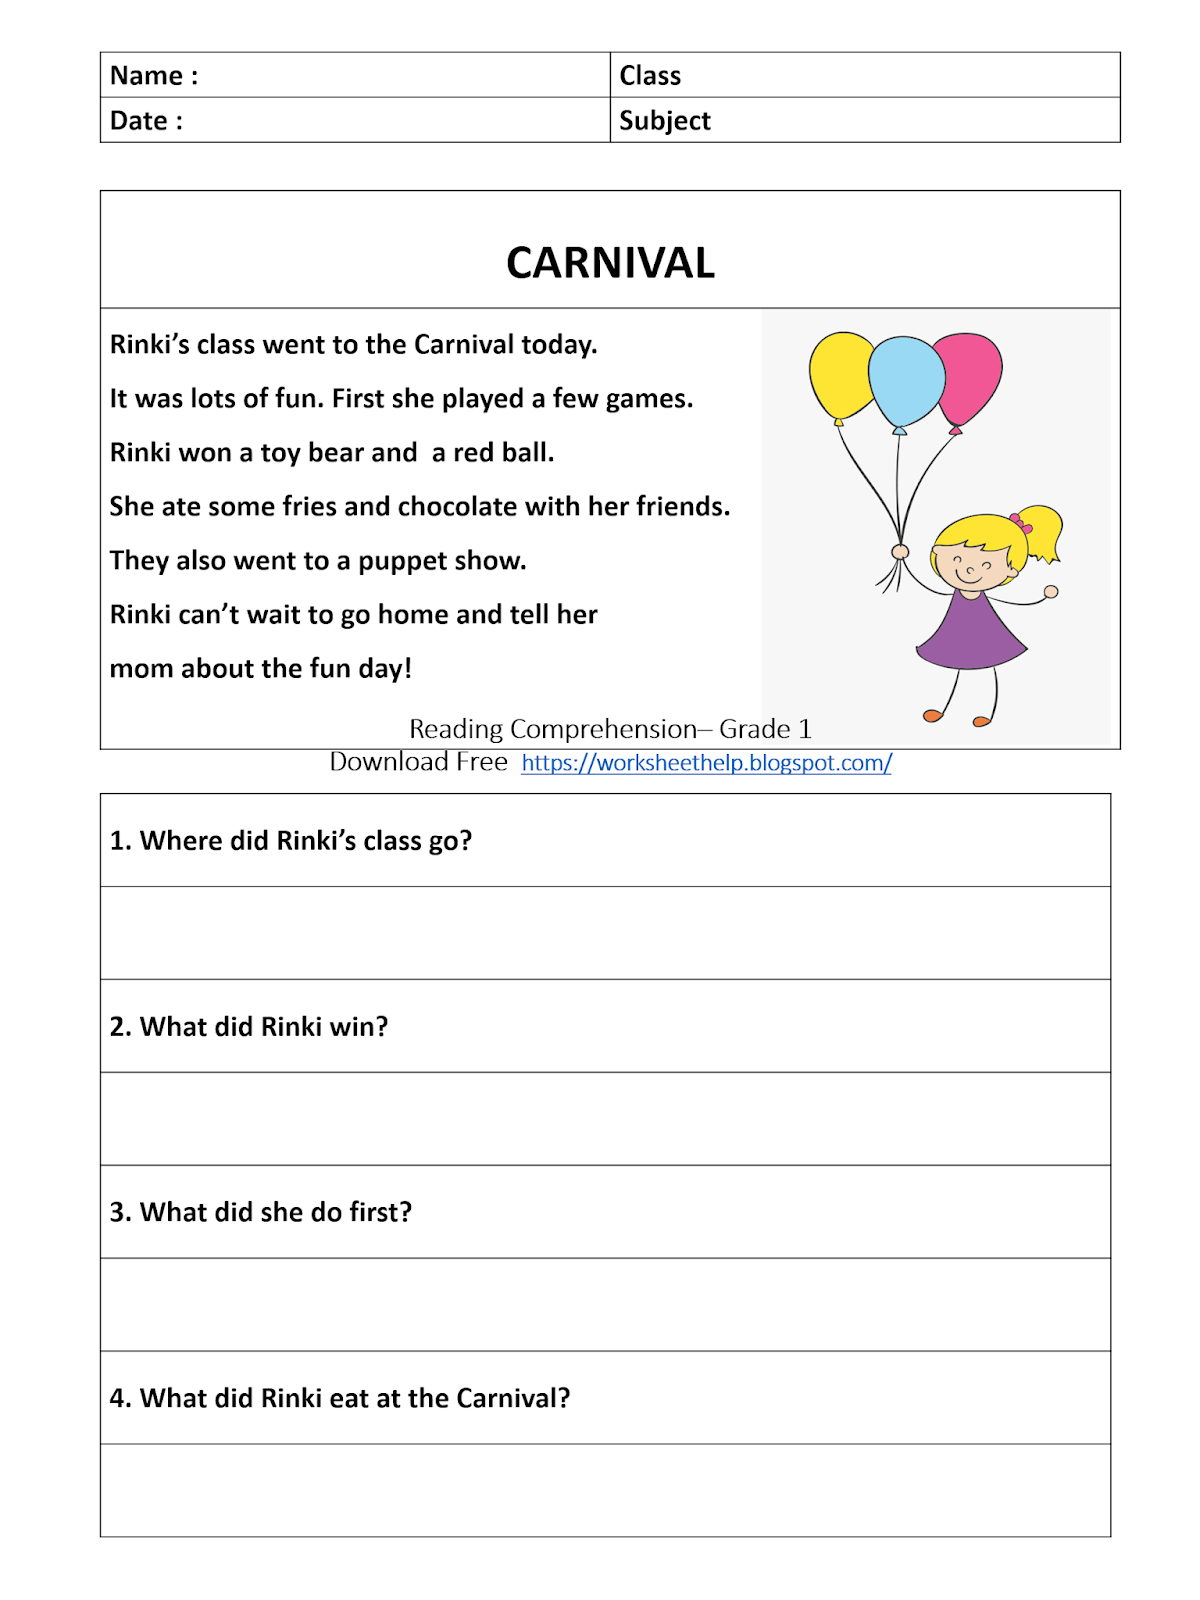 medium resolution of Clipart Creationz: Reading Comprehension Worksheet - Grade 1 - Carnival